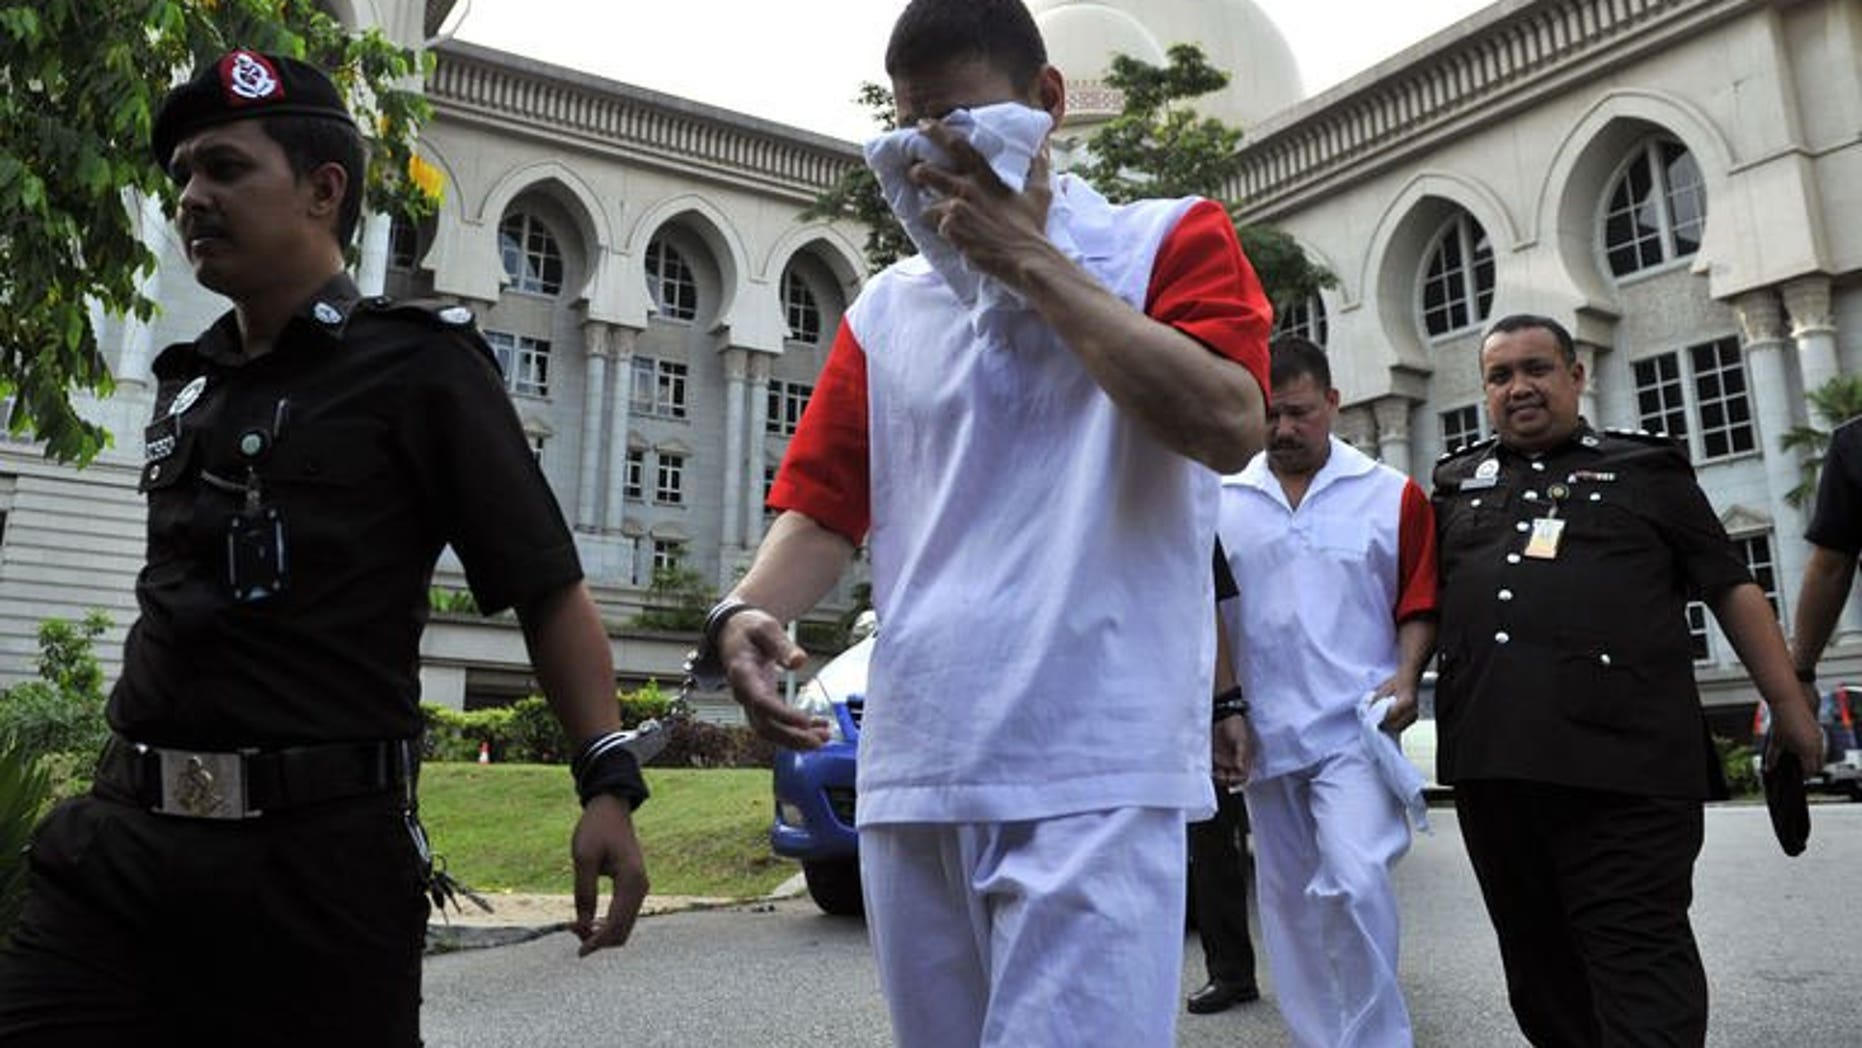 Malaysian prison personnel escort Mexican brothers Jose Regino Gonzalez Villarreal (2nd L) and Luis Alfonso Gonzalez Villarreal (2nd, R) as they leave the appeals court in Putrajaya on August 14, 2013. Malaysia's appeals court upheld the decision to hang three Mexican brothers to death for drug trafficking, forcing them to head to the nation's apex court as a last resort.